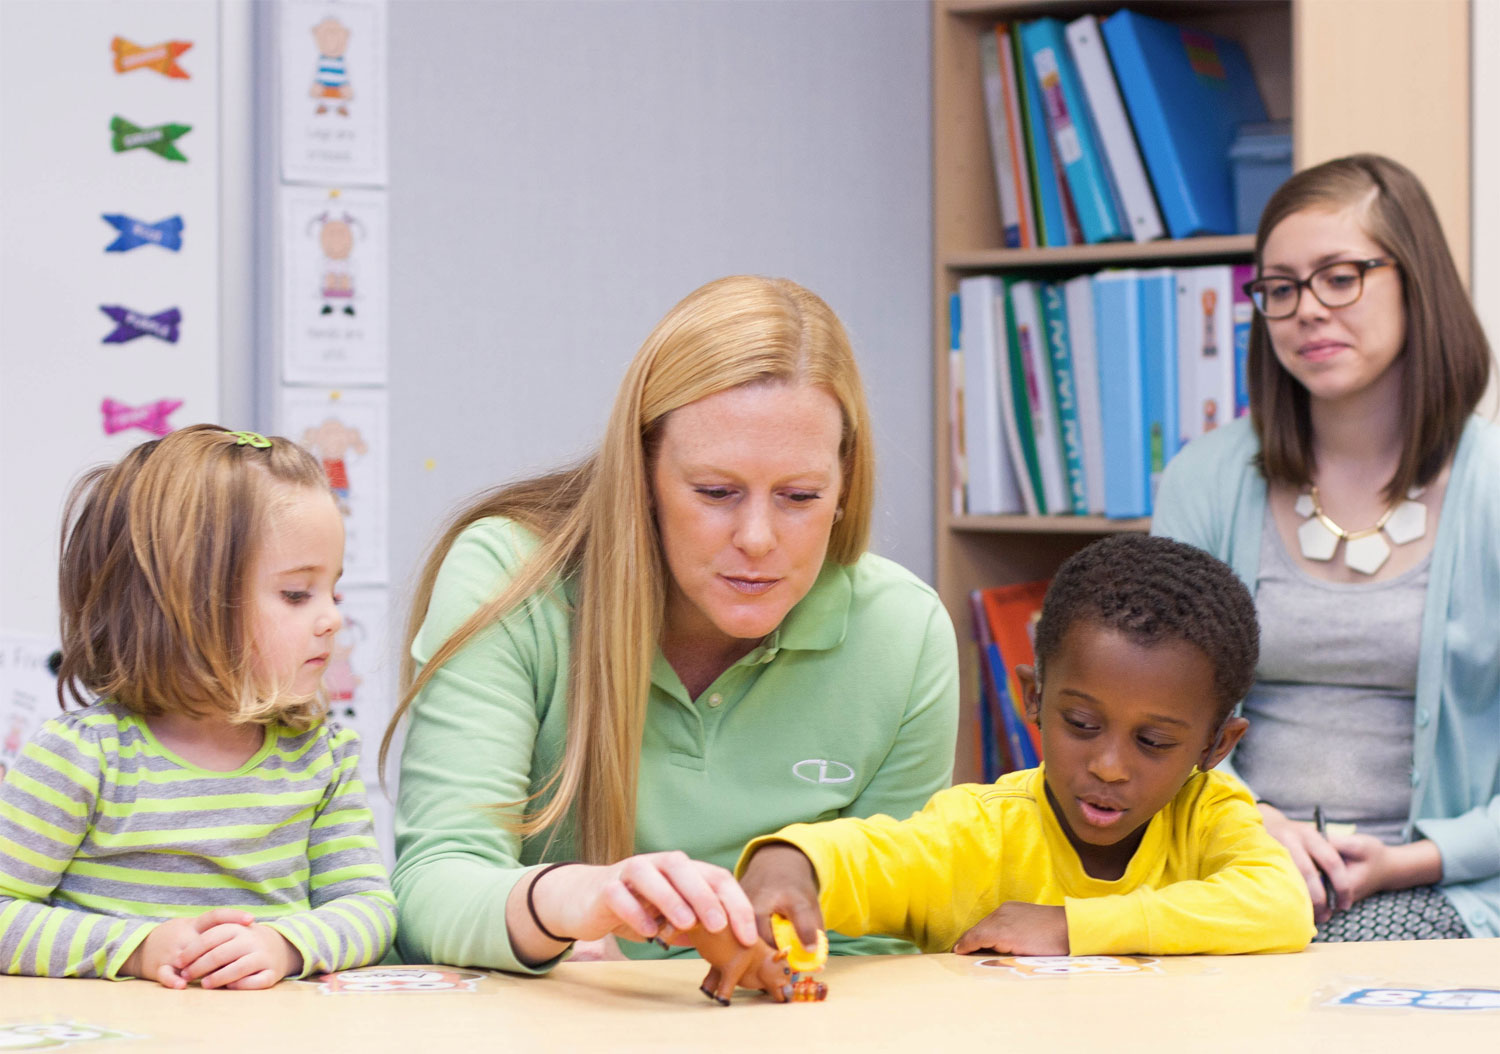 CID teacher teaching a language less to two preschoolers as an observer watches.